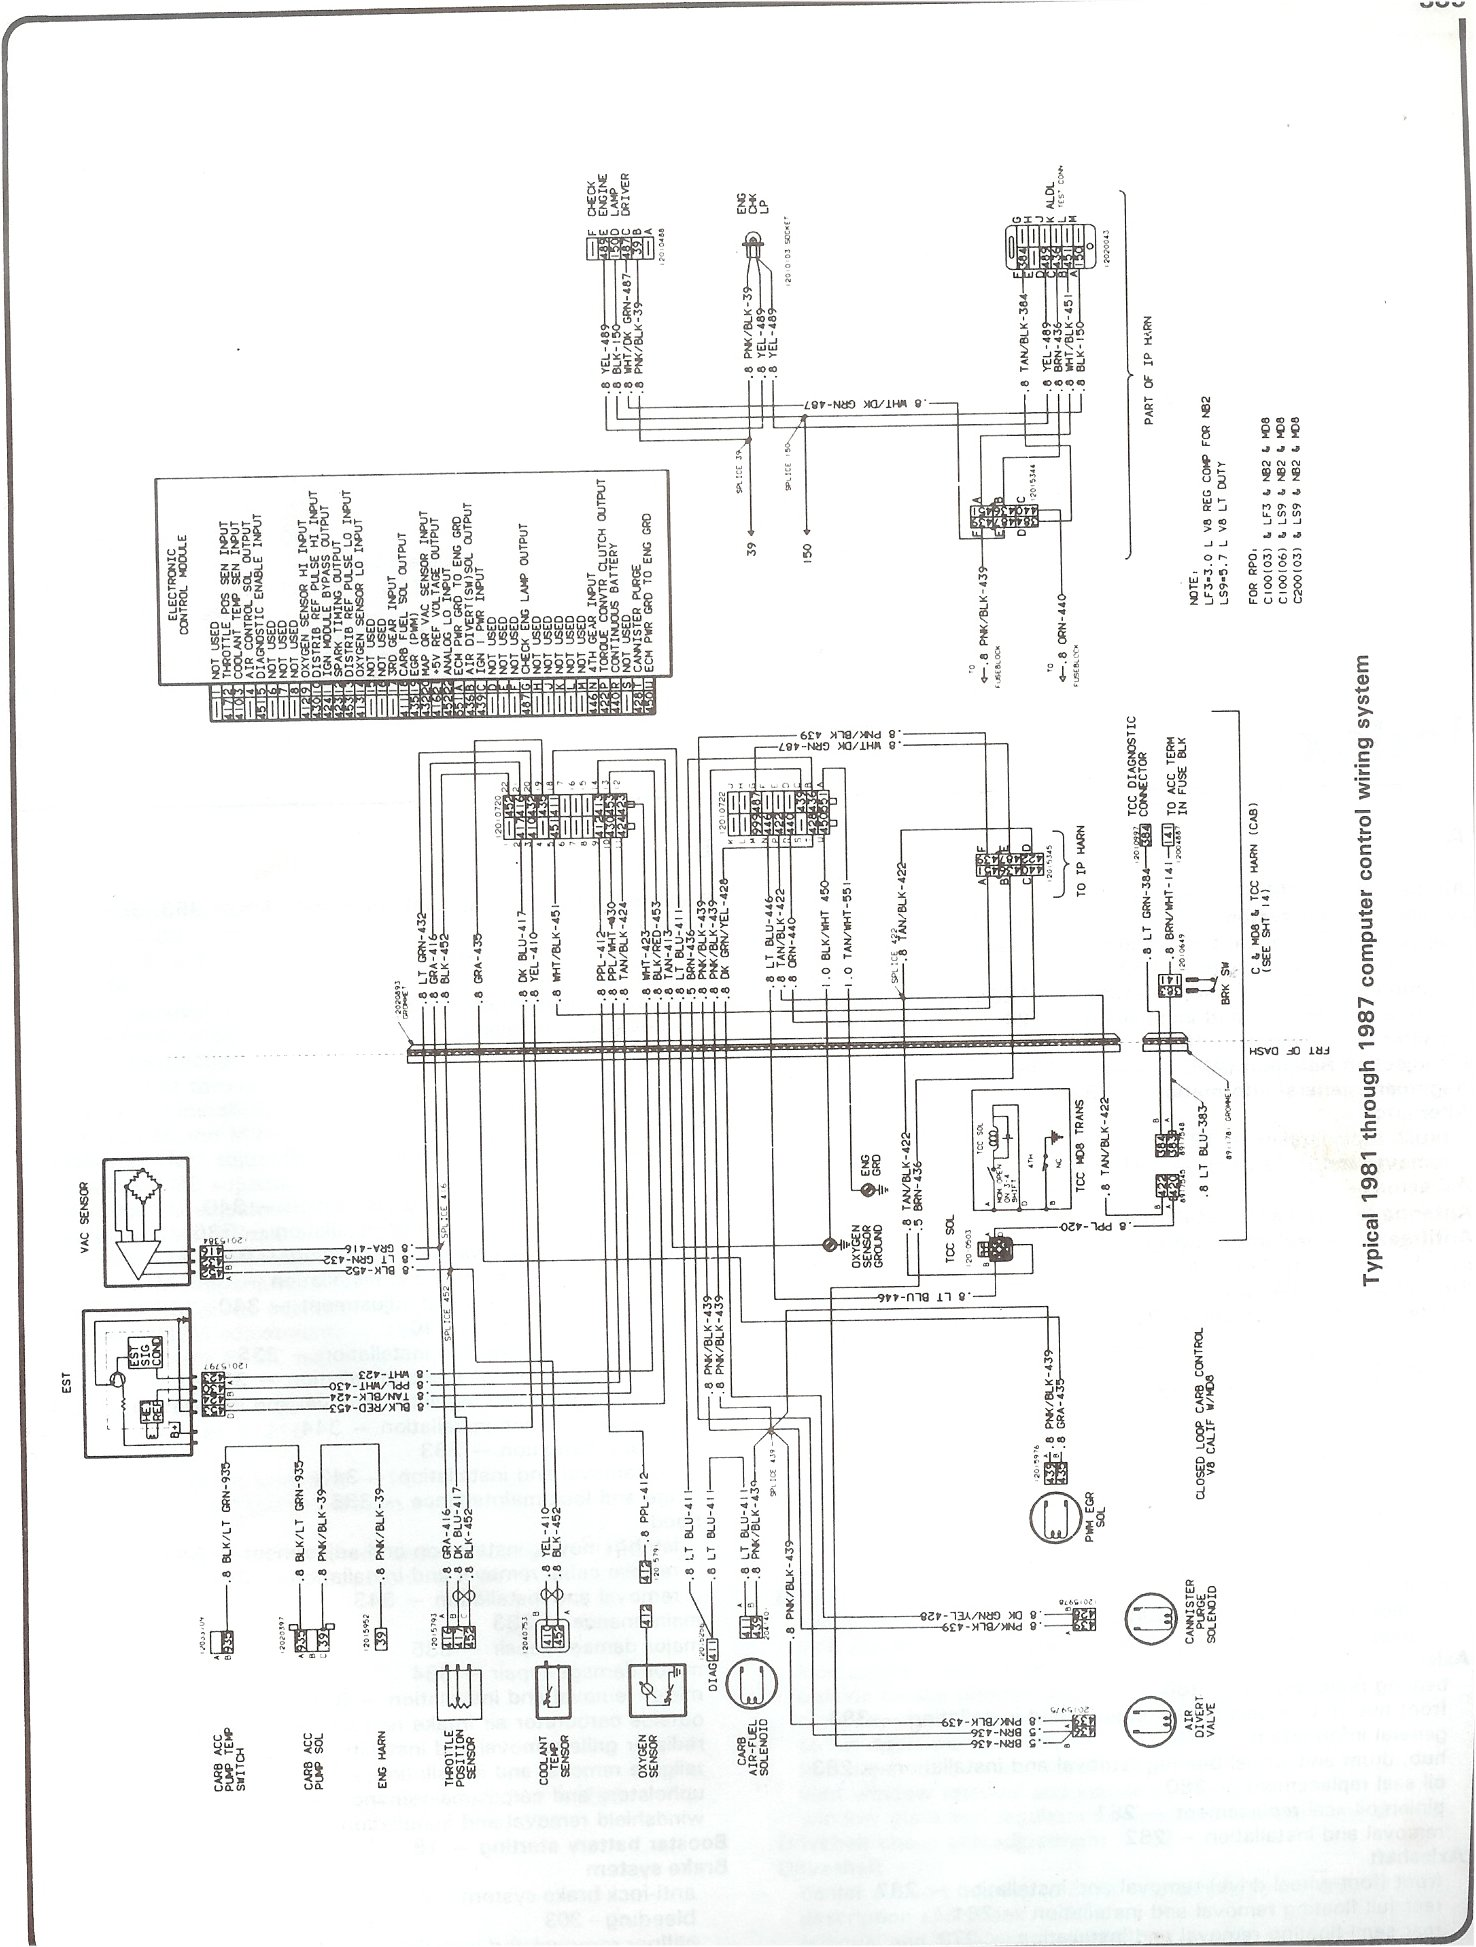 81 87_computer_control_wiring complete 73 87 wiring diagrams 1988 GMC Sierra 1500 at panicattacktreatment.co